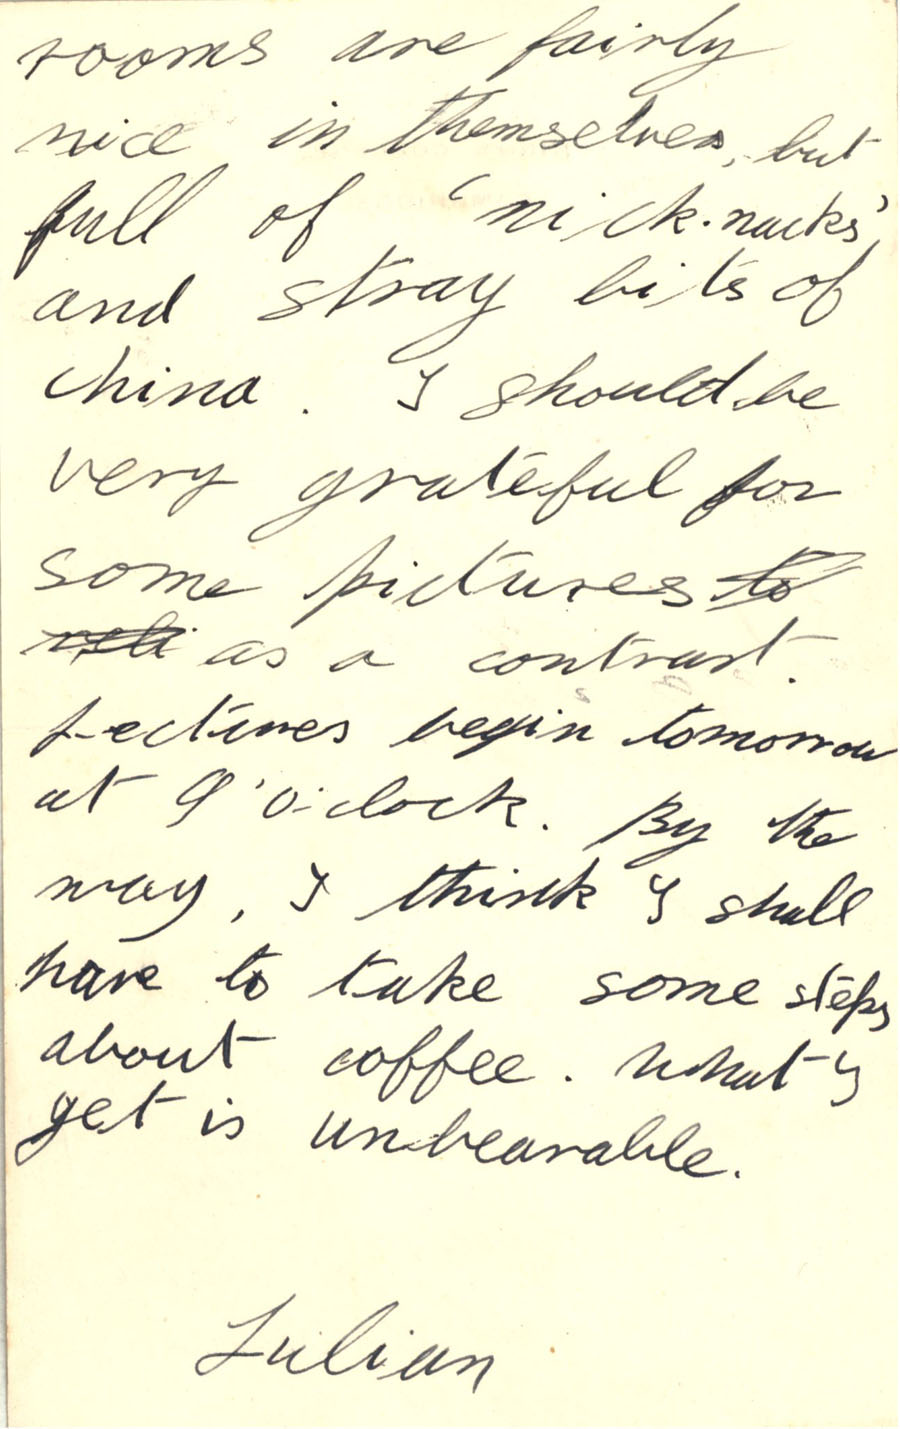 Second page of a letter from Julian Bell to Vanessa Bell, 10 October 1927 (CHA/1/55/3/9).